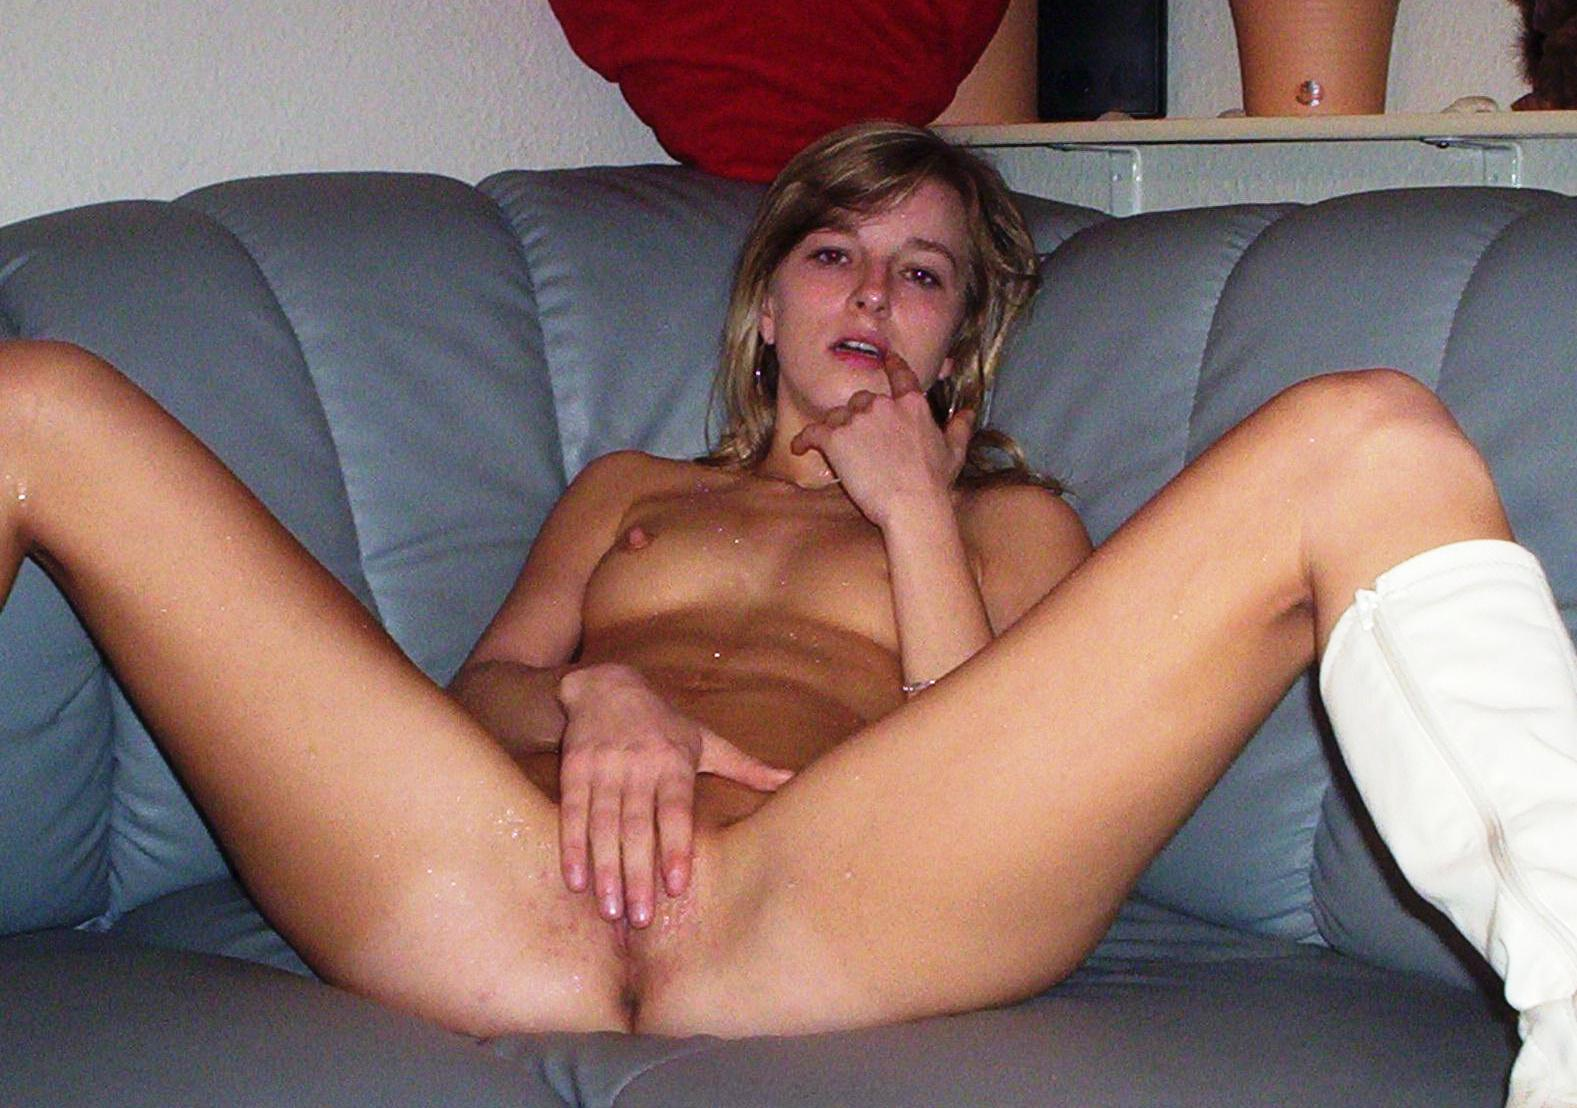 Sexy skinny amateur women naked thanks for